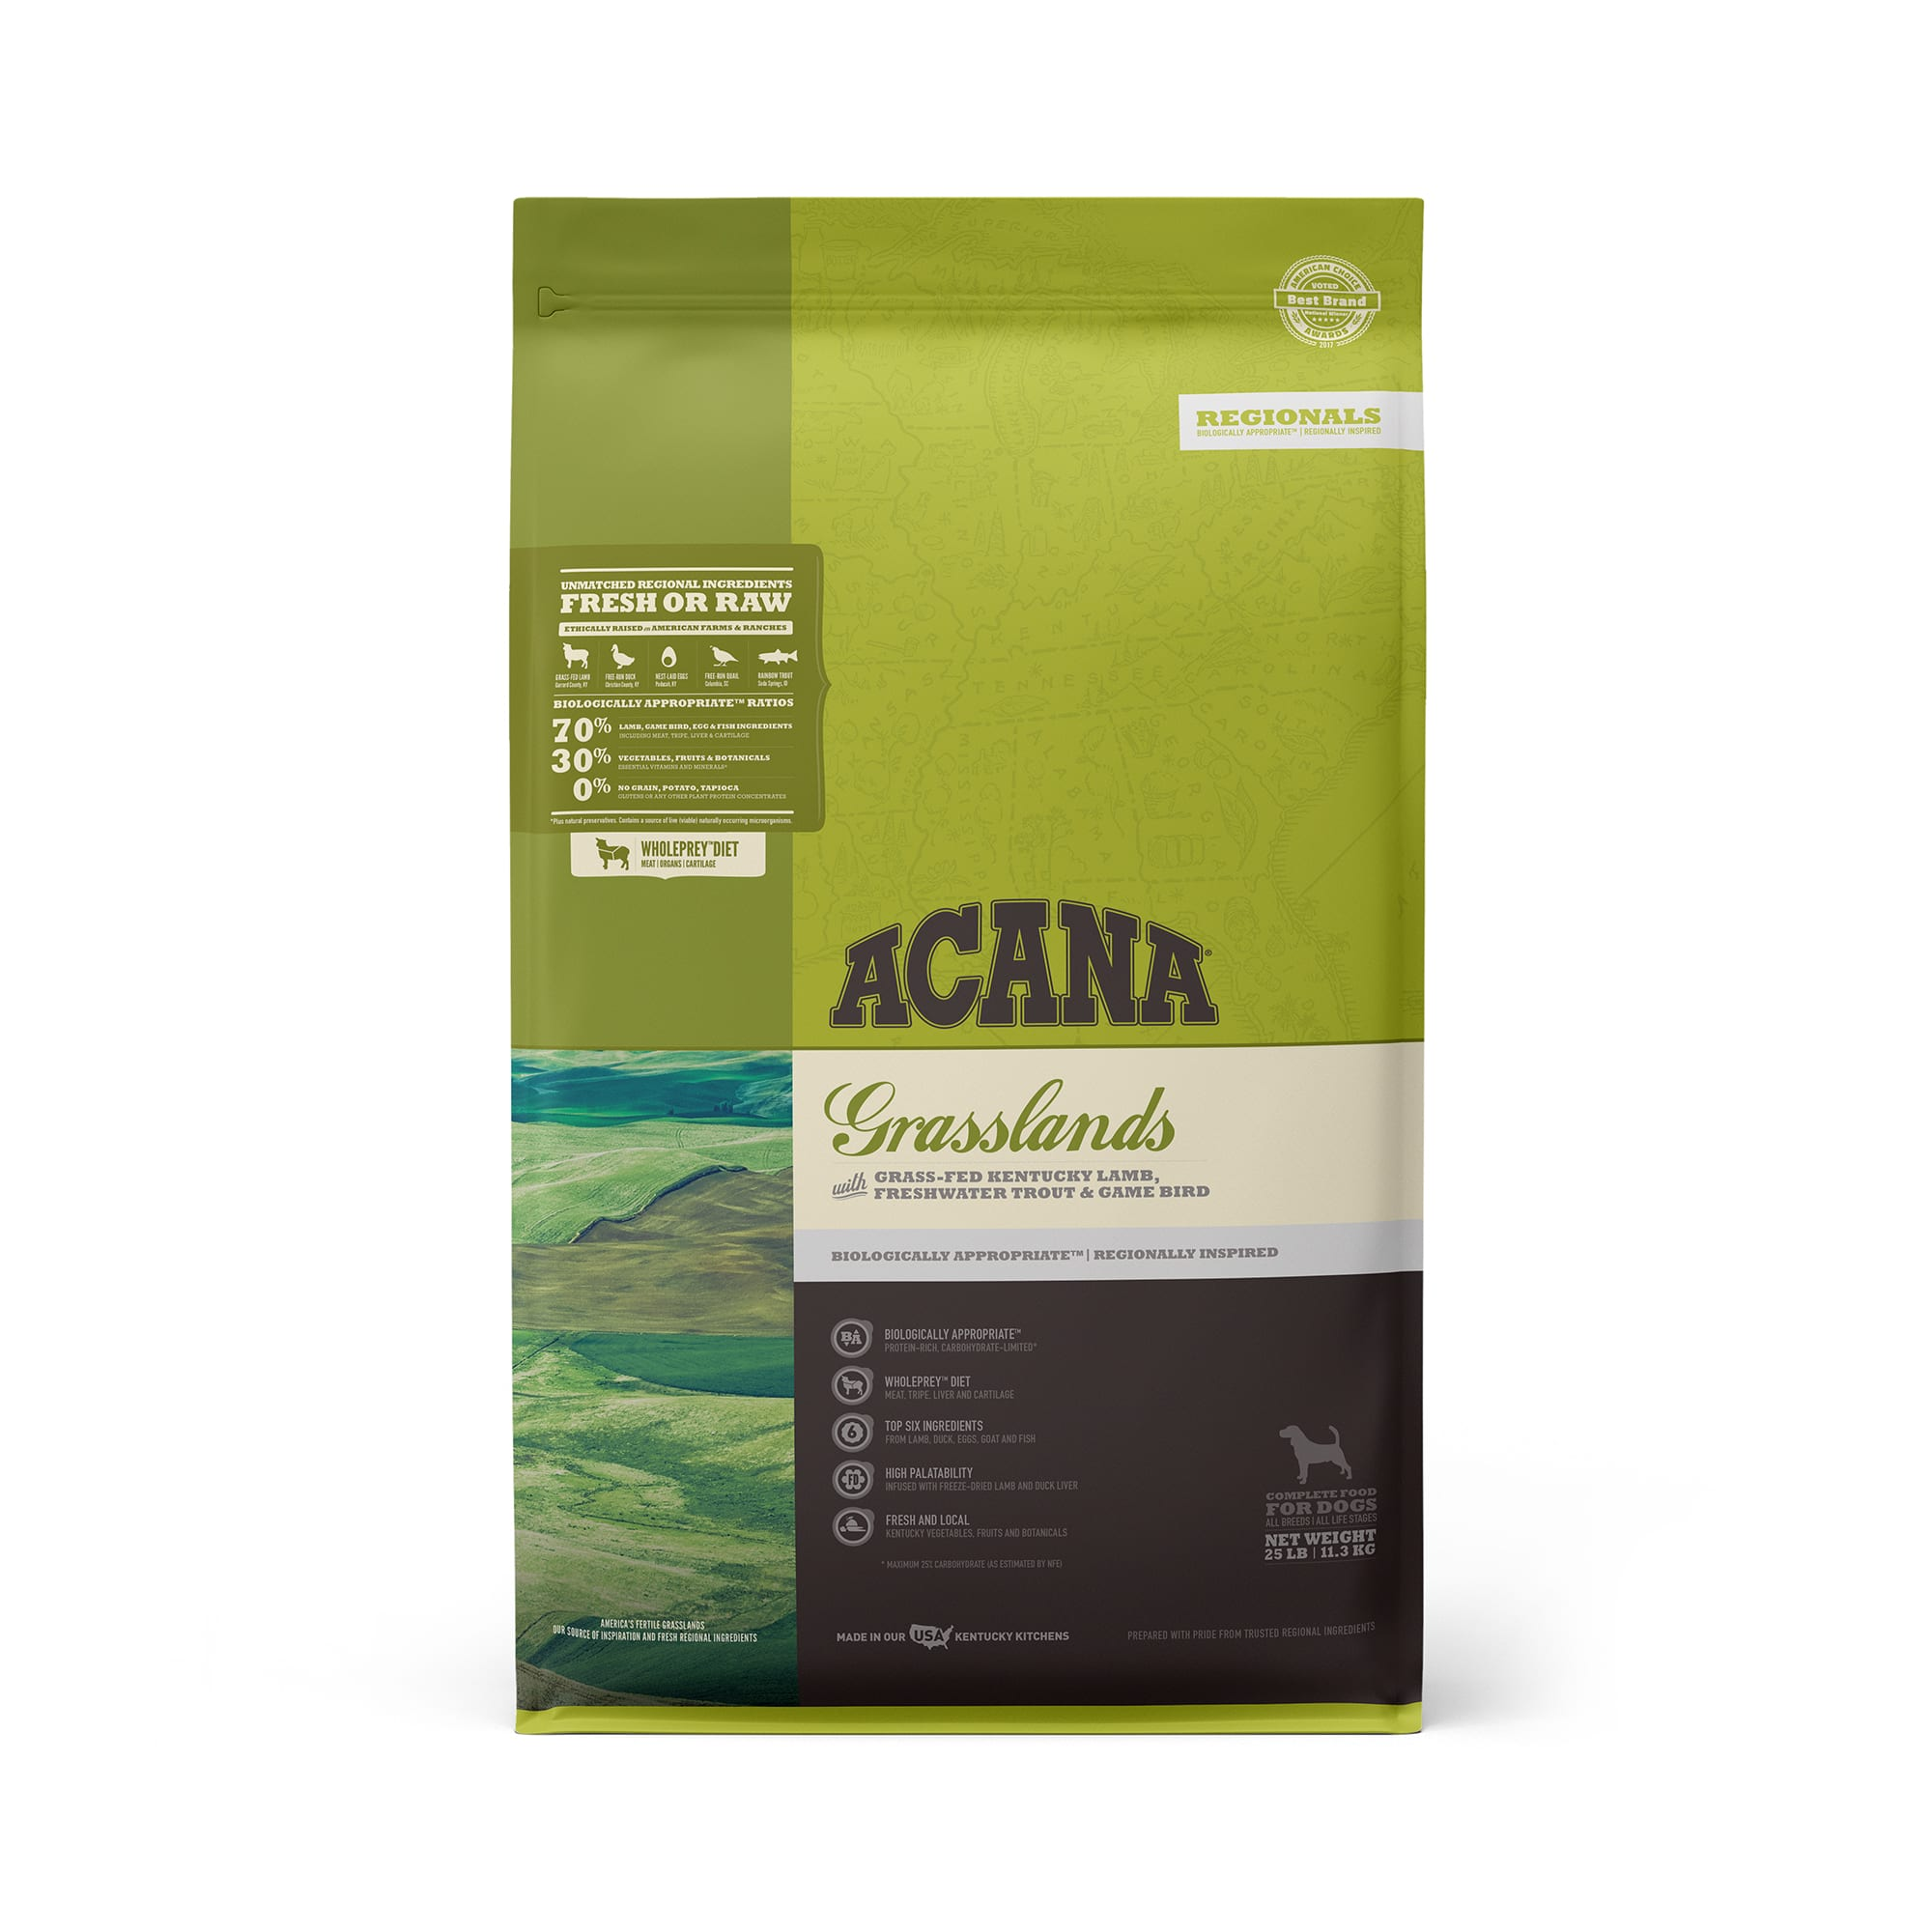 ACANA Grasslands Grain Free High Protein Freeze-Dried Coated Lamb Duck Trout and Quail Dry Dog Food